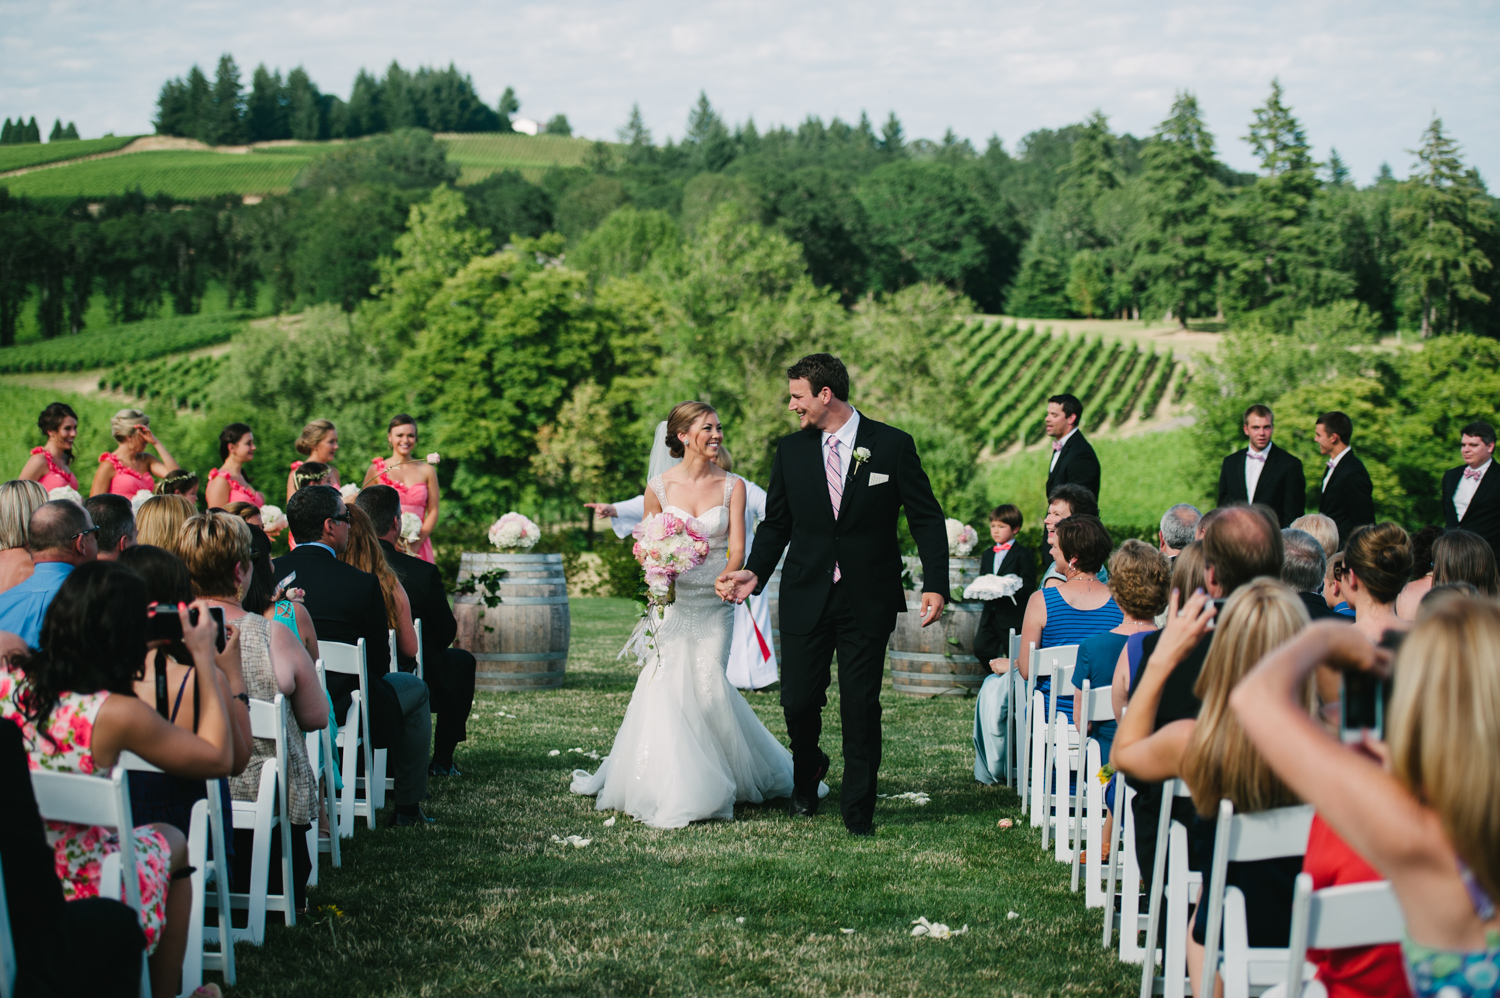 16-zenith-vineyard-wedding-portland-oregon-christa-taylor-photography.jpg